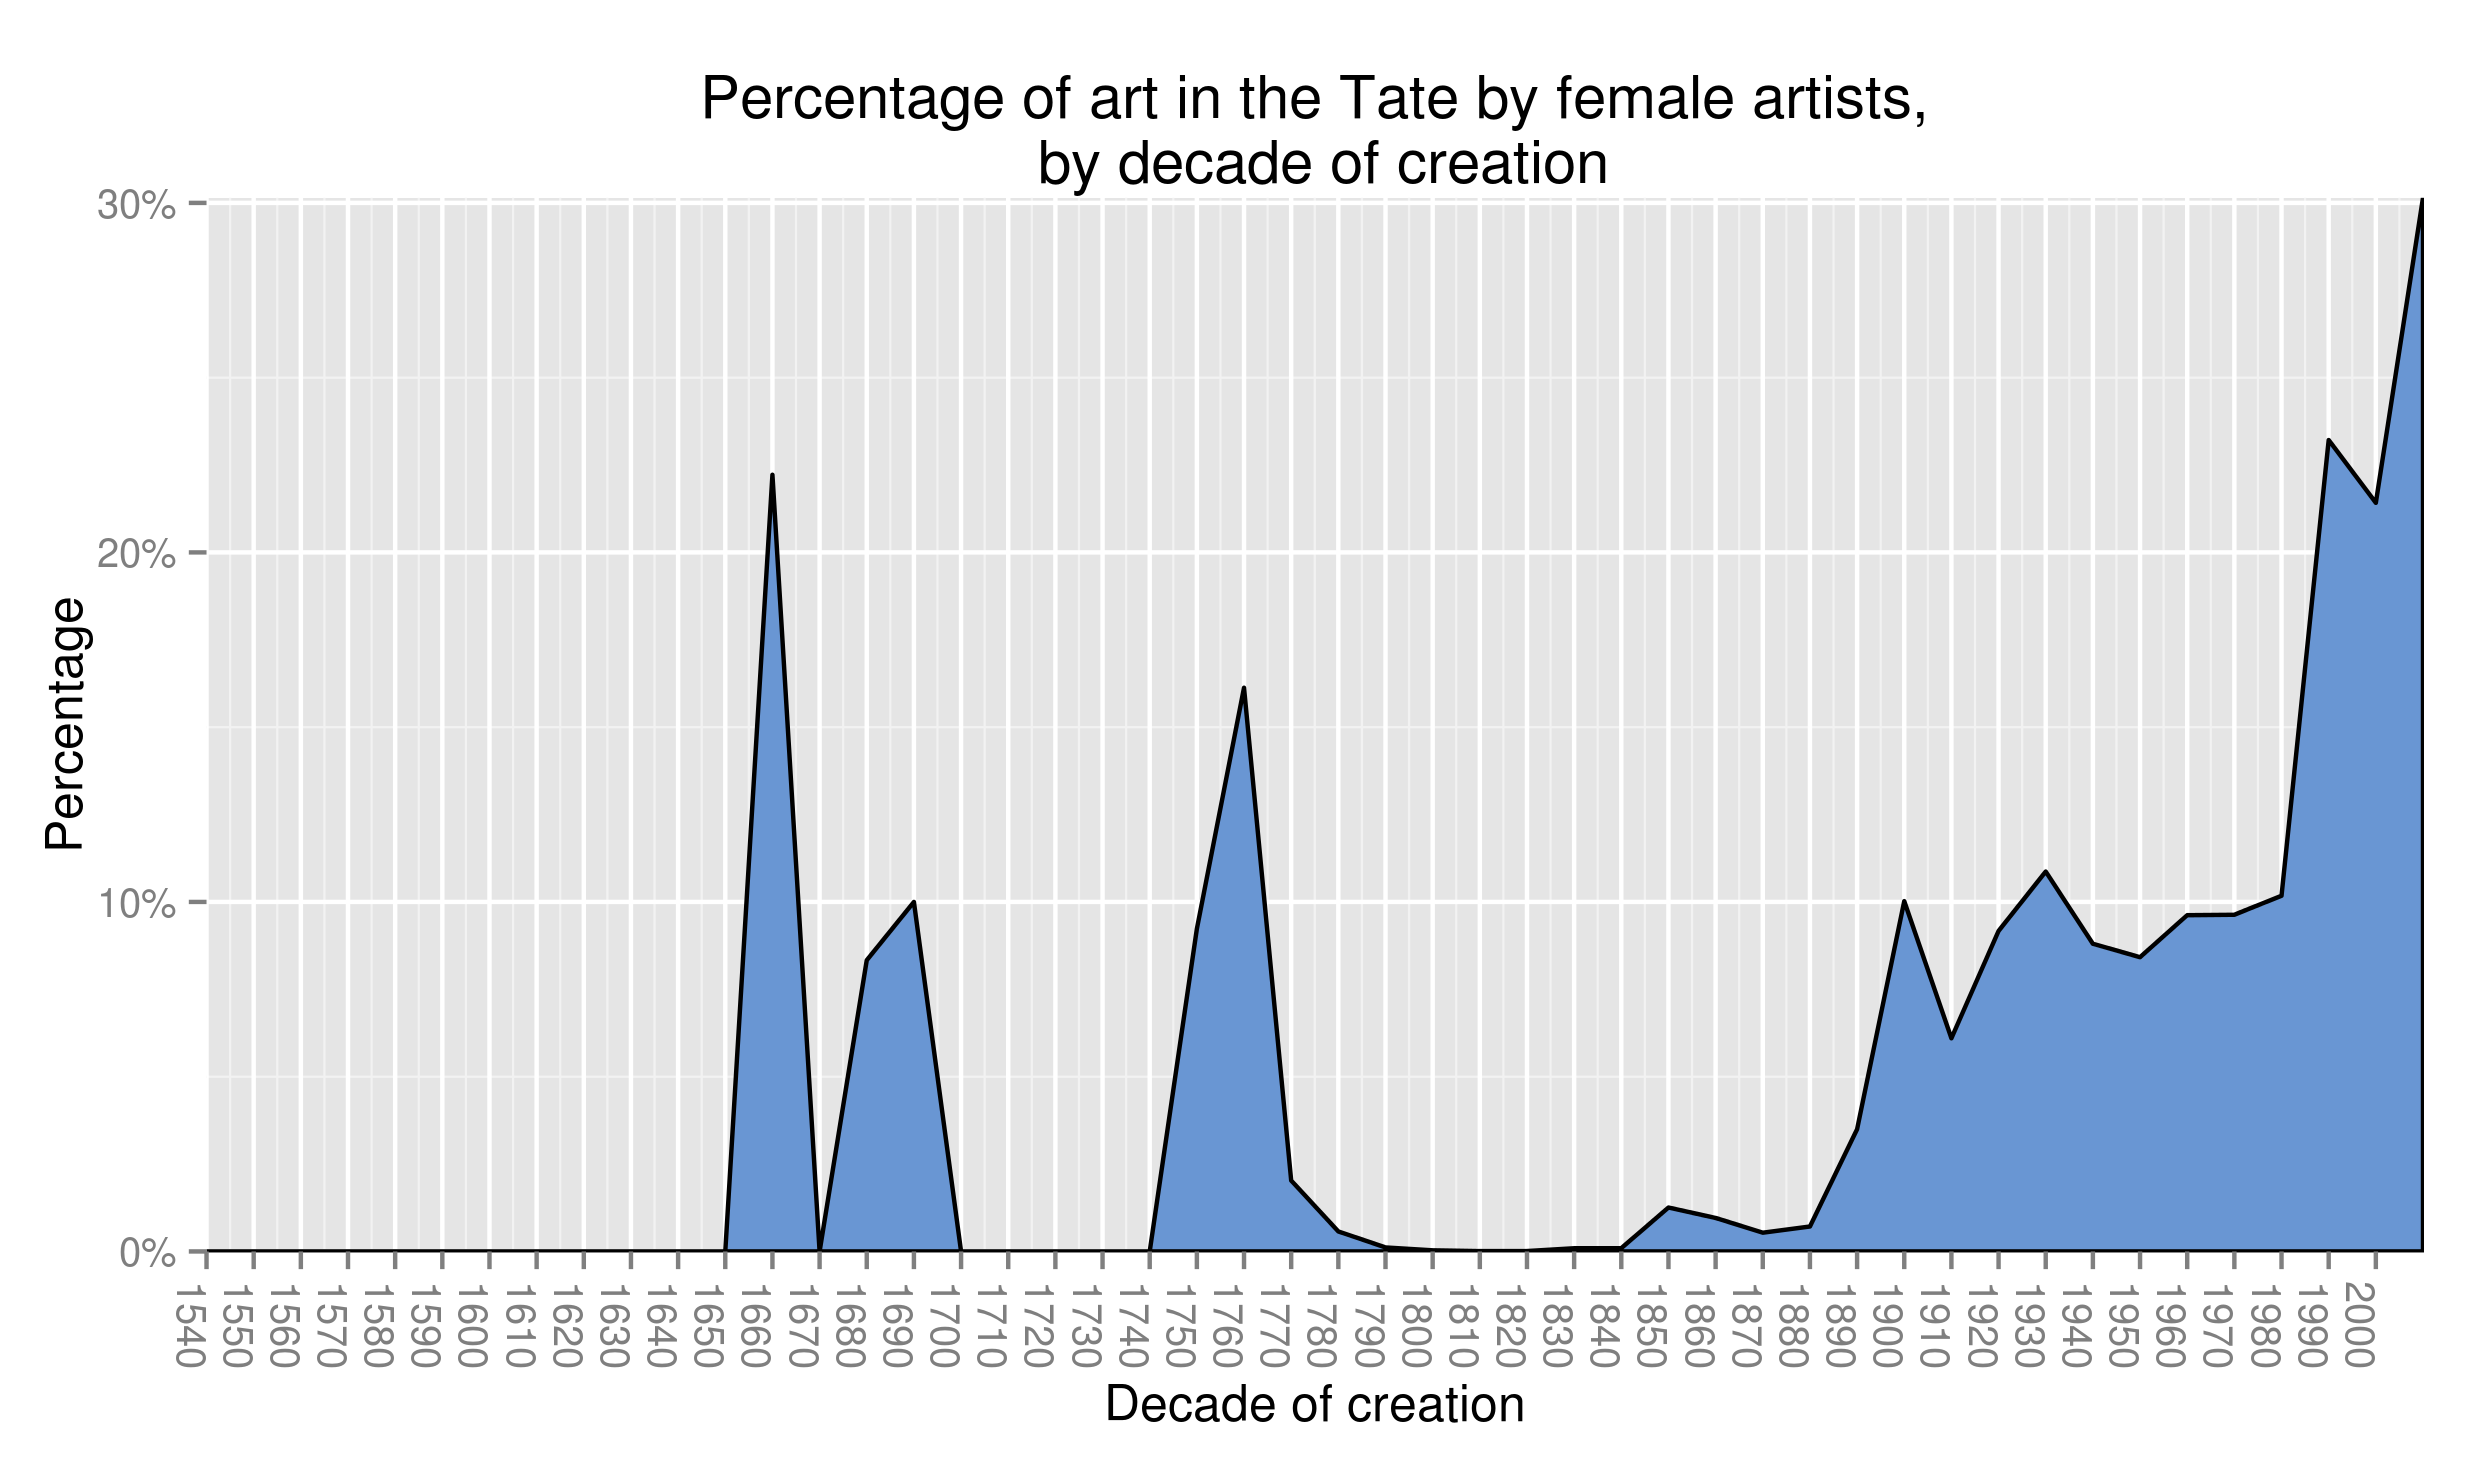 Representation of female artists in the Tate